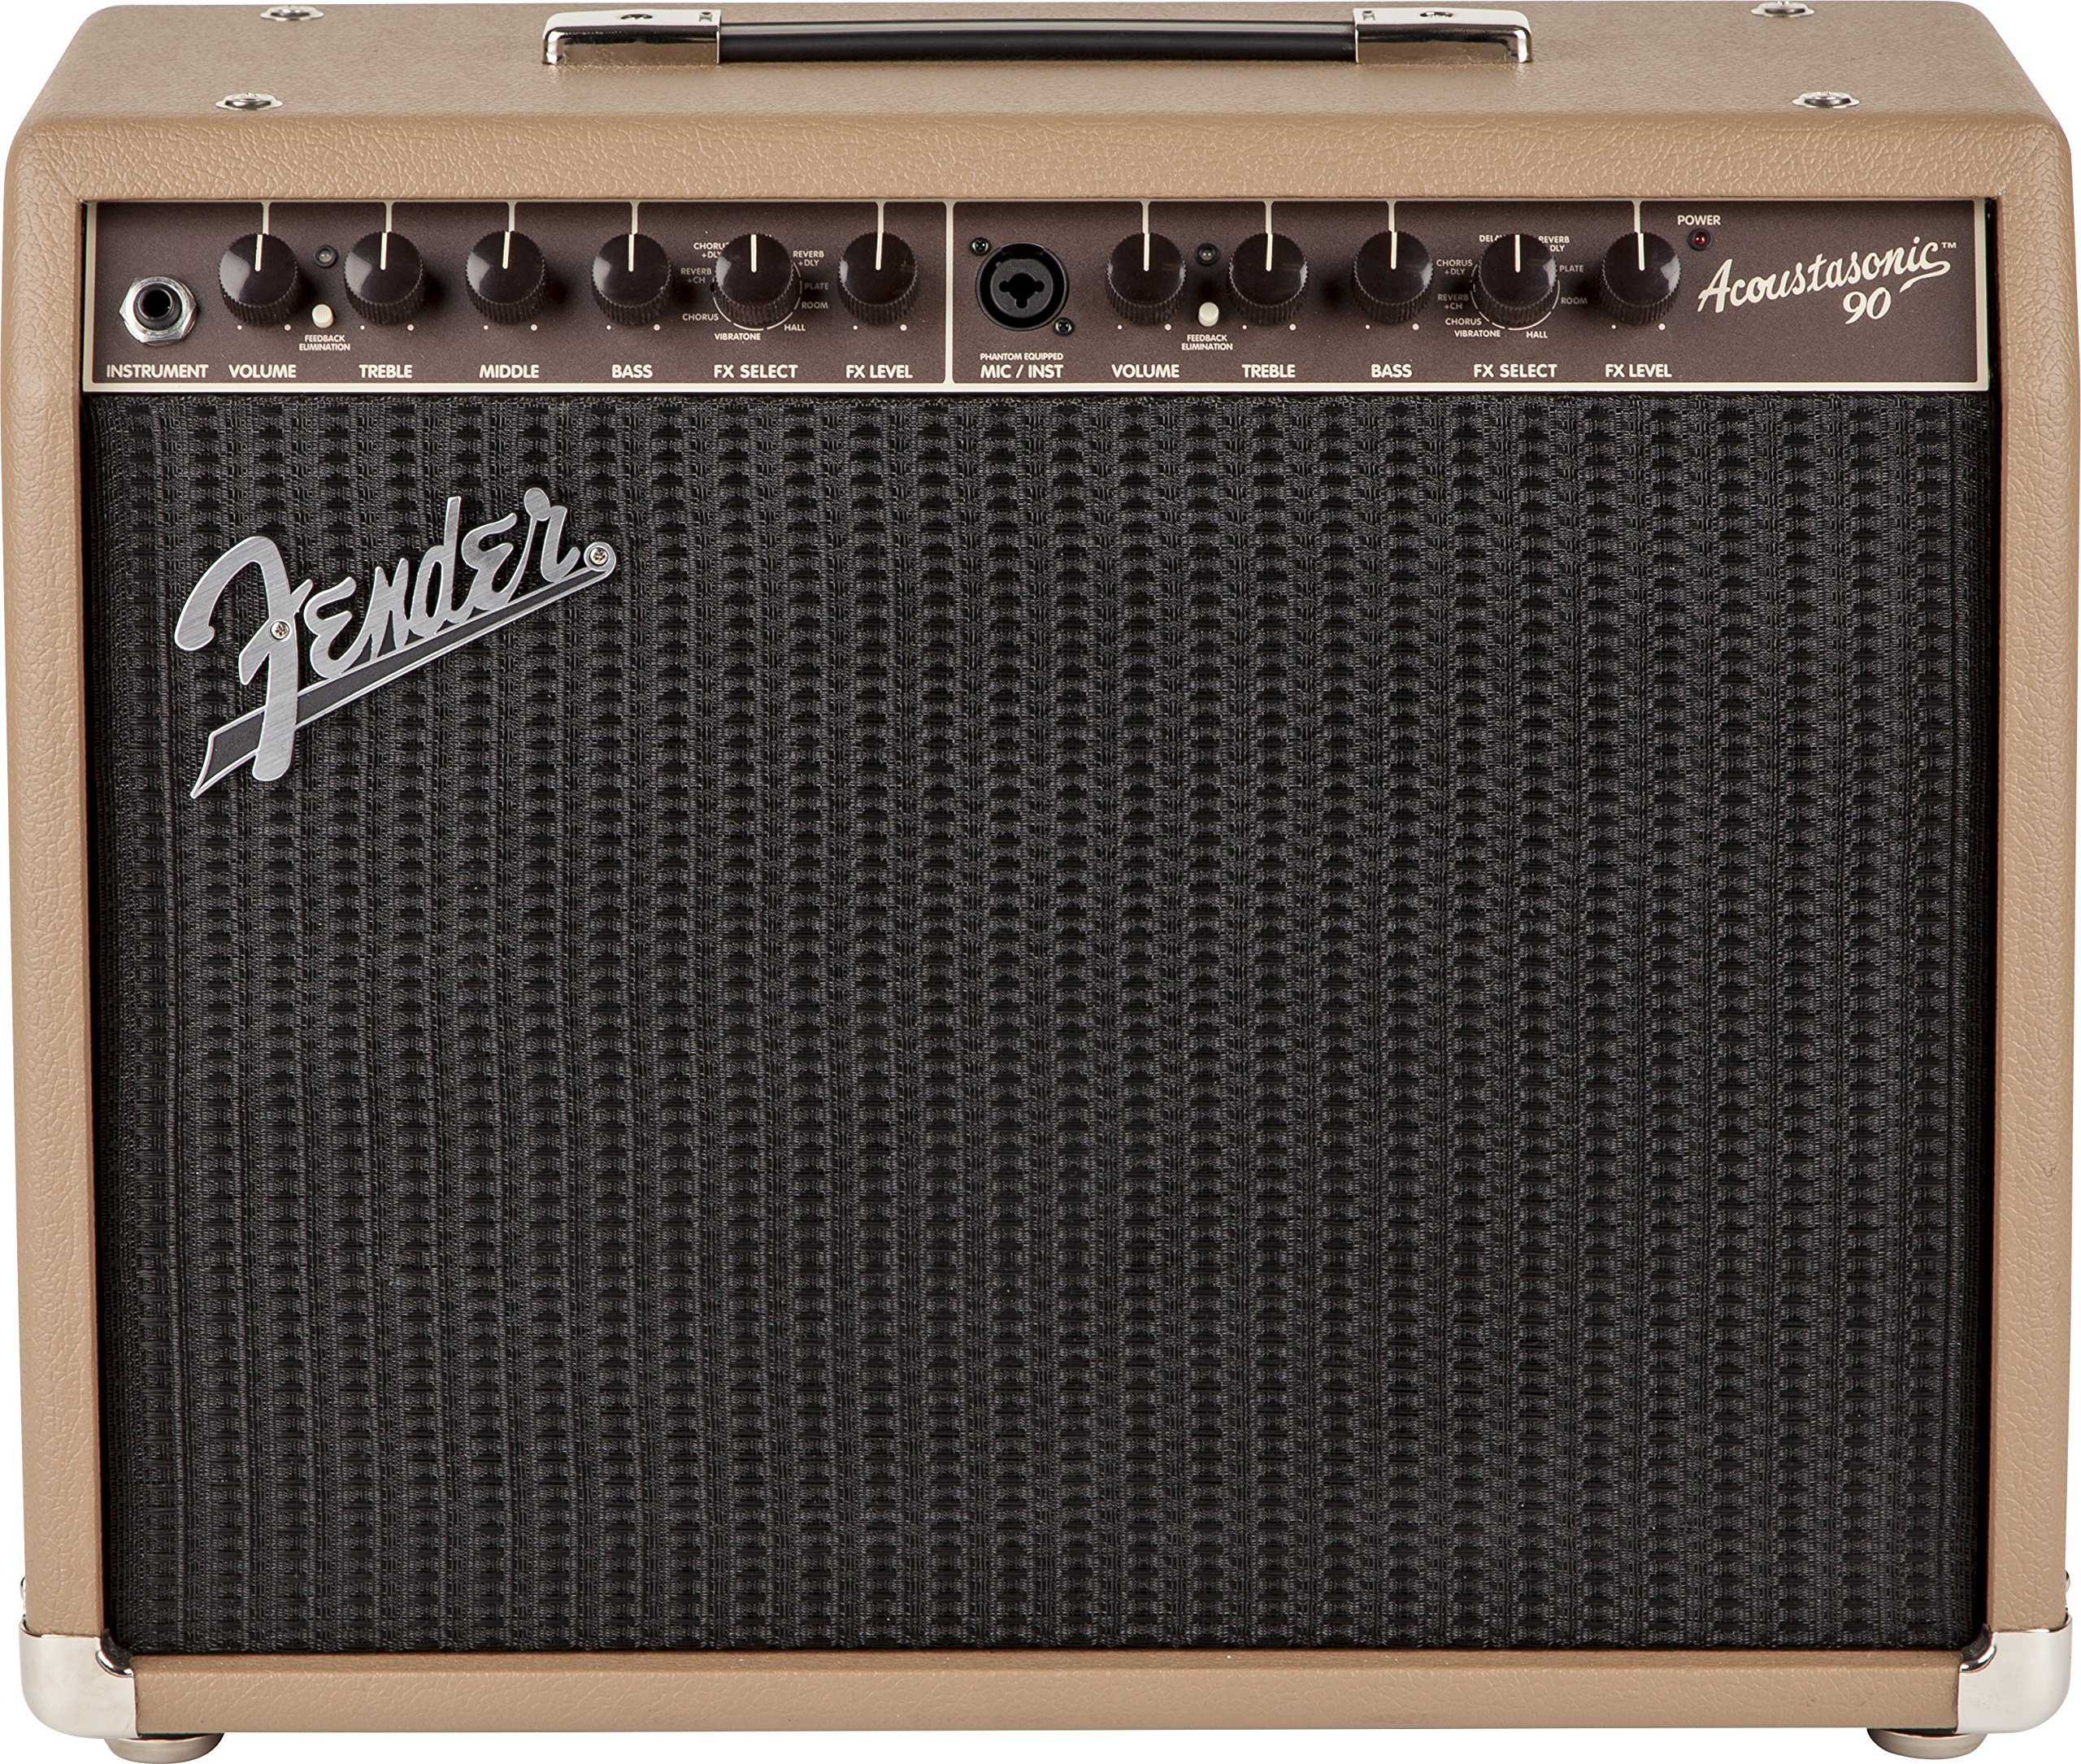 Fender Acoustasonic 90- 90 Watt Acoustic Guitar Amplifier